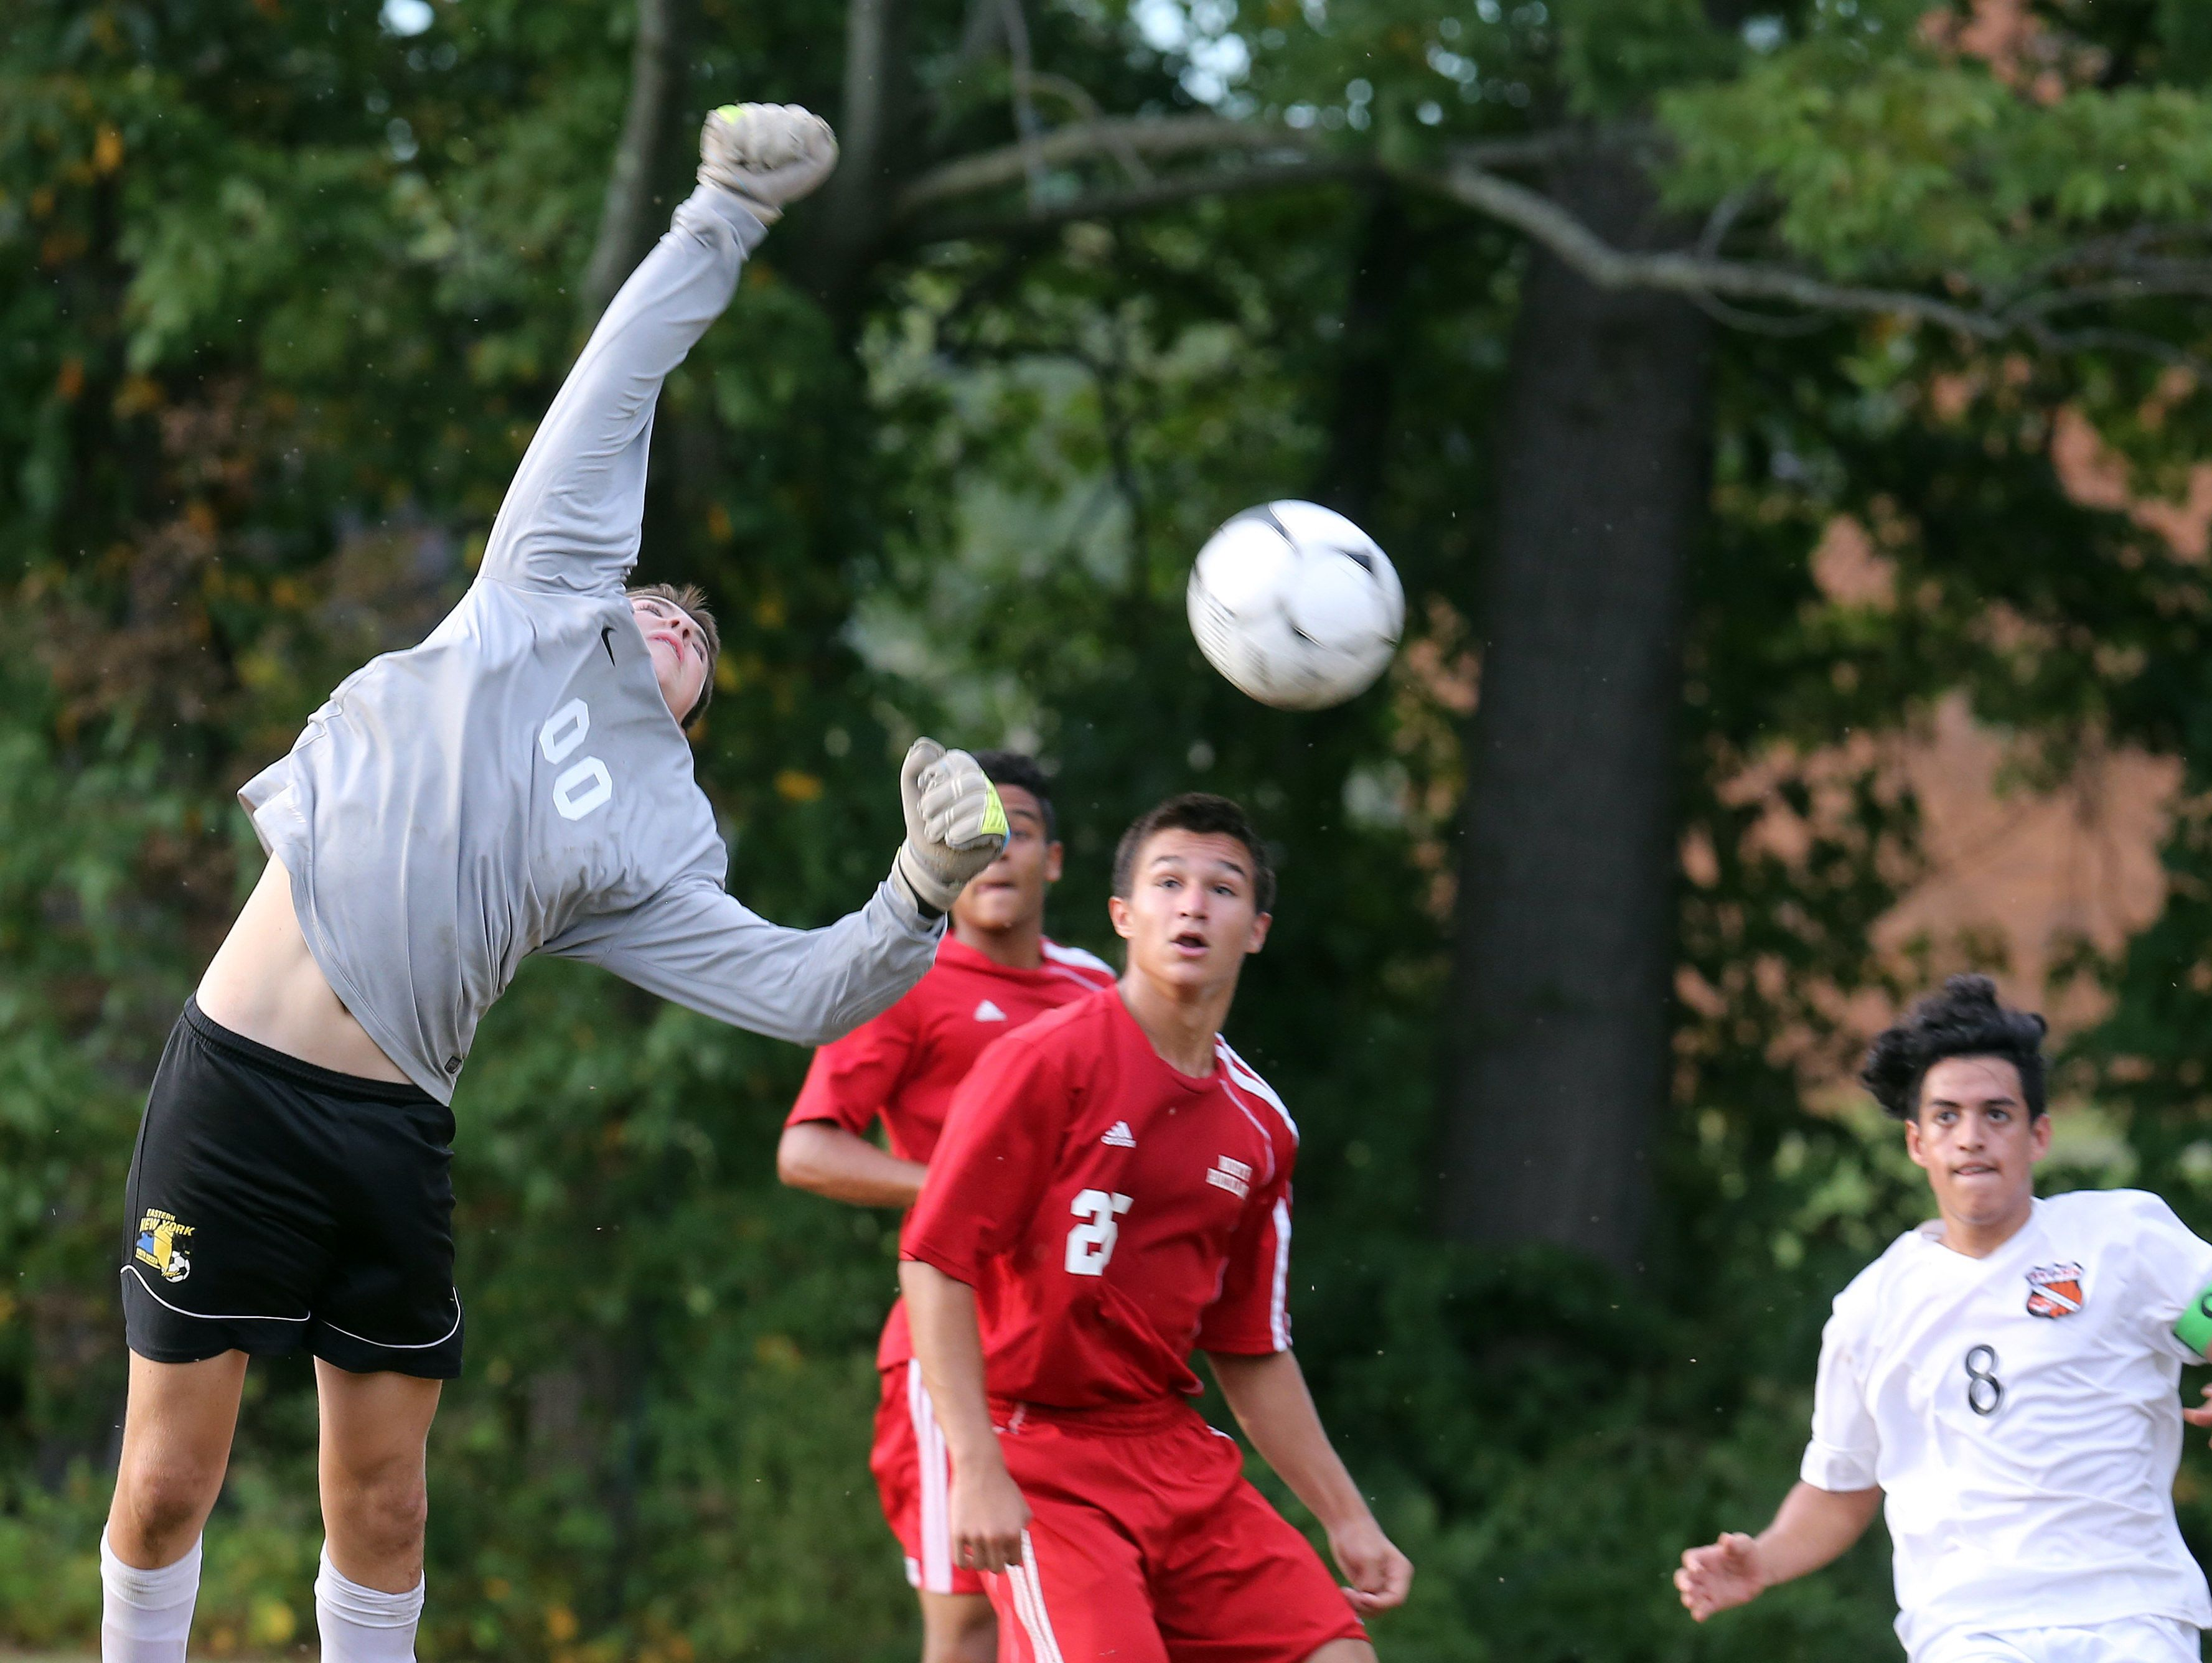 North Rockland's goalie Josh Heber (00) tries to block the shot during boys soccer game at Spring Valley High School on Sept. 20, 2016.